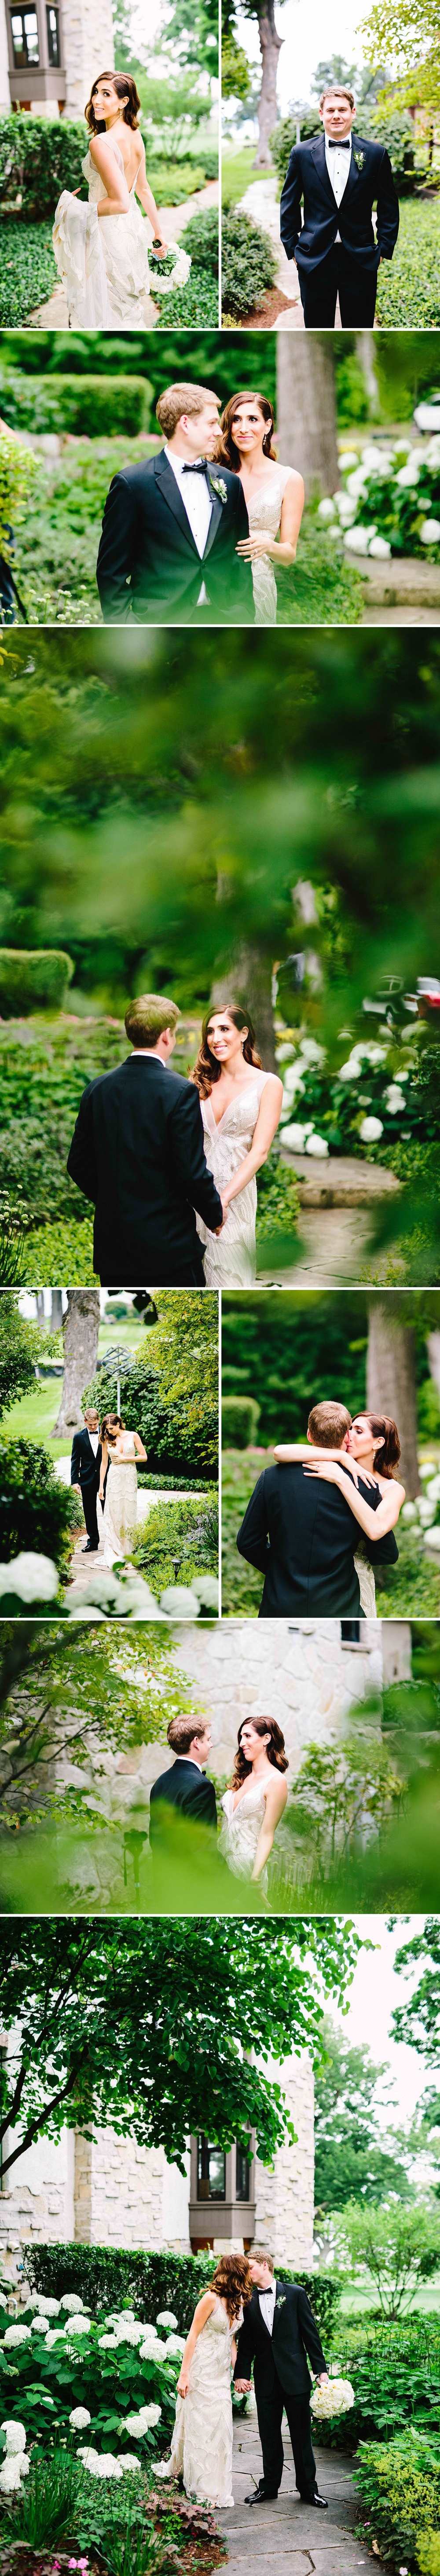 chicago-fine-art-wedding-photography-owens1